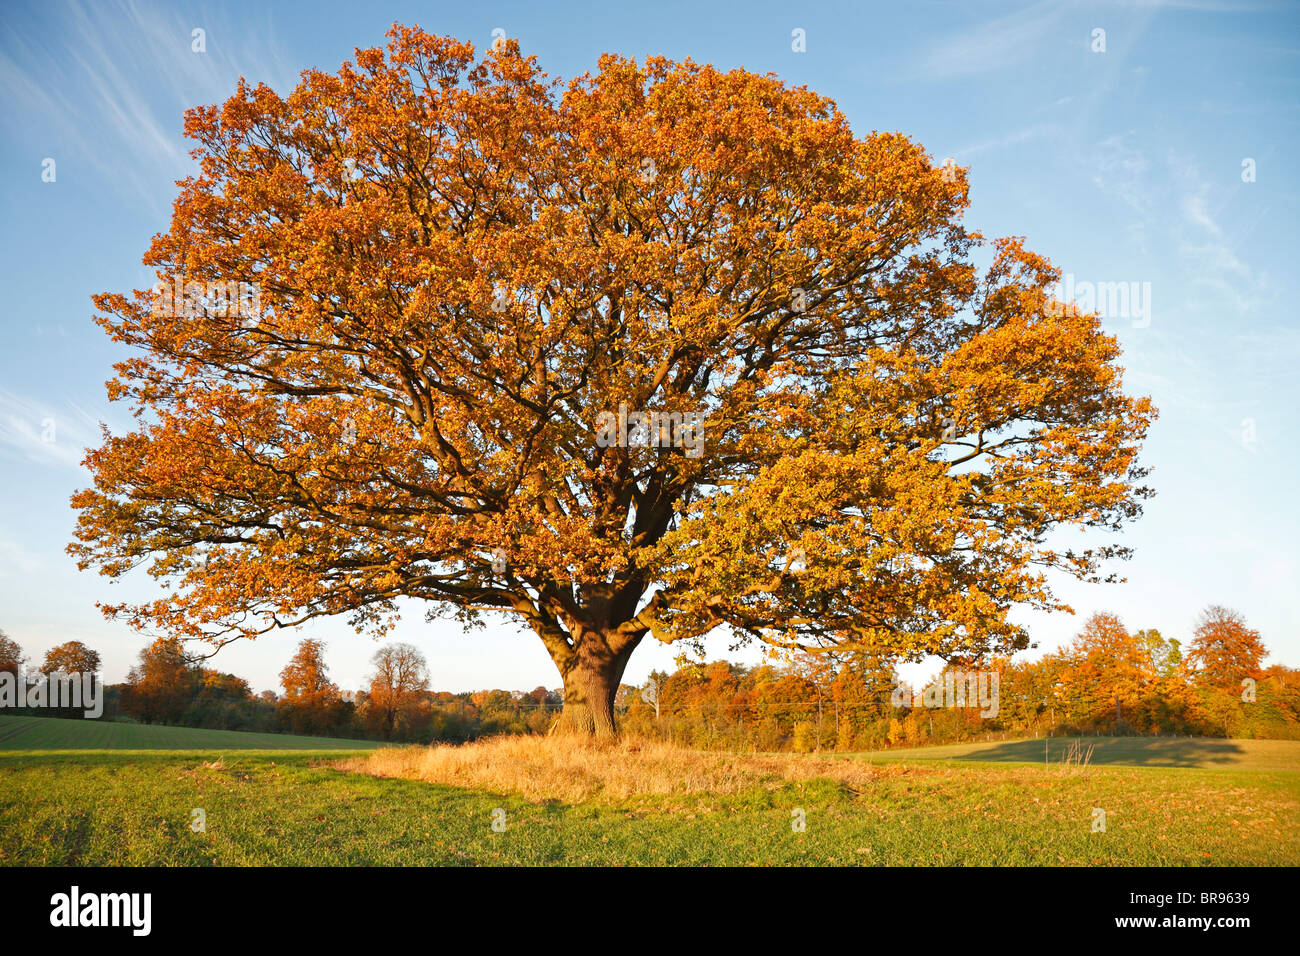 Big, old oak tree (common oak, English oak, Quercus robur) on field with fall brown coloured leaves in autumn sunset, Stock Photo